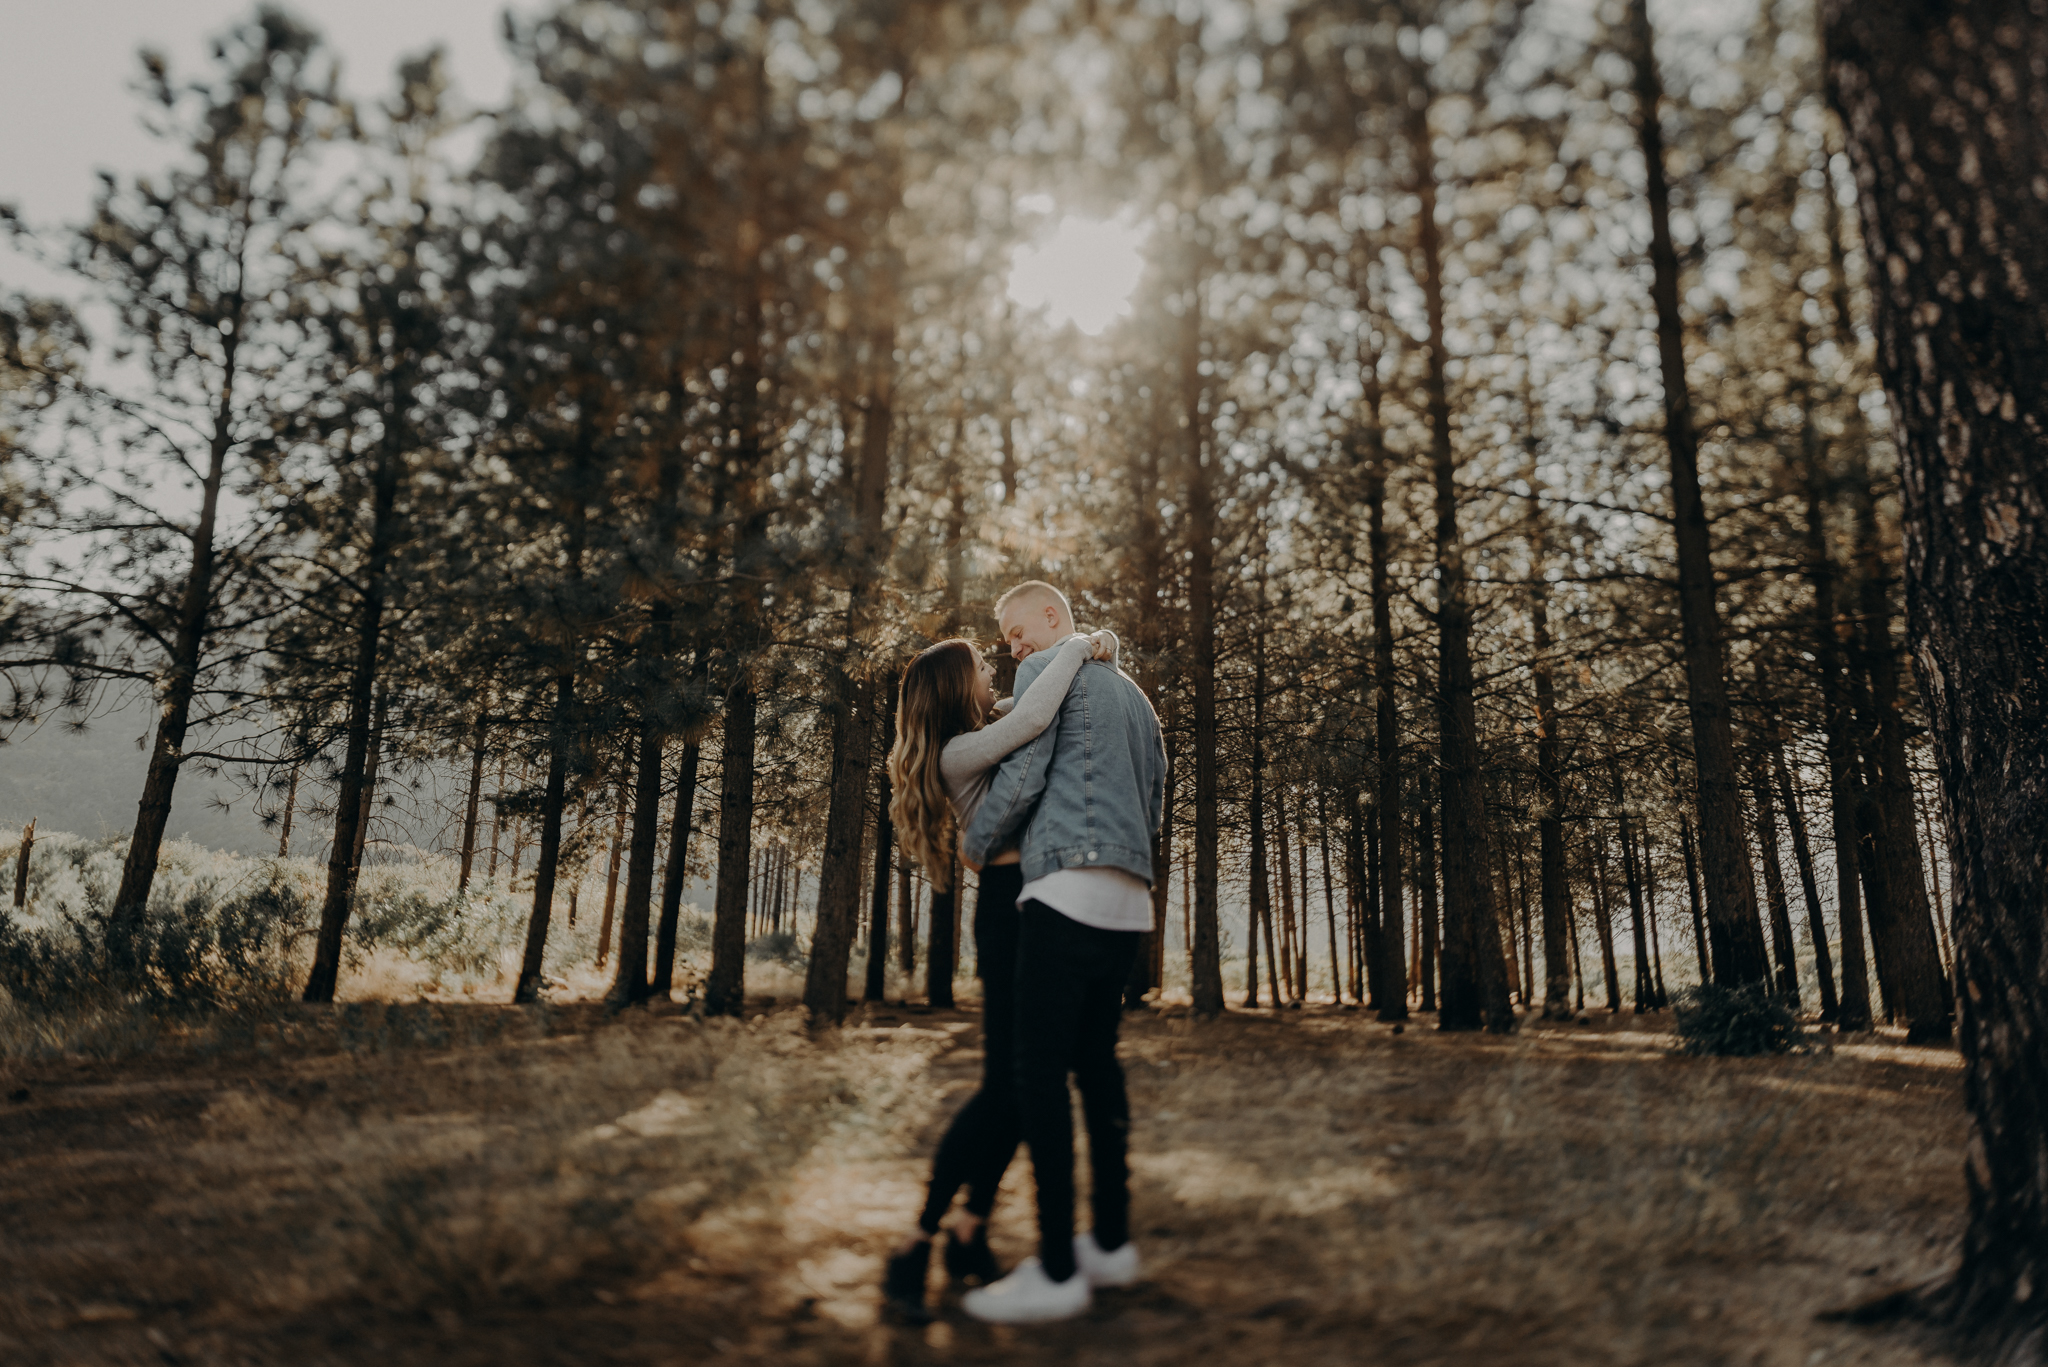 Isaiah + Taylor Photography - Los Angeles Forest Engagement, Laid-back Wedding Photographer-015.jpg